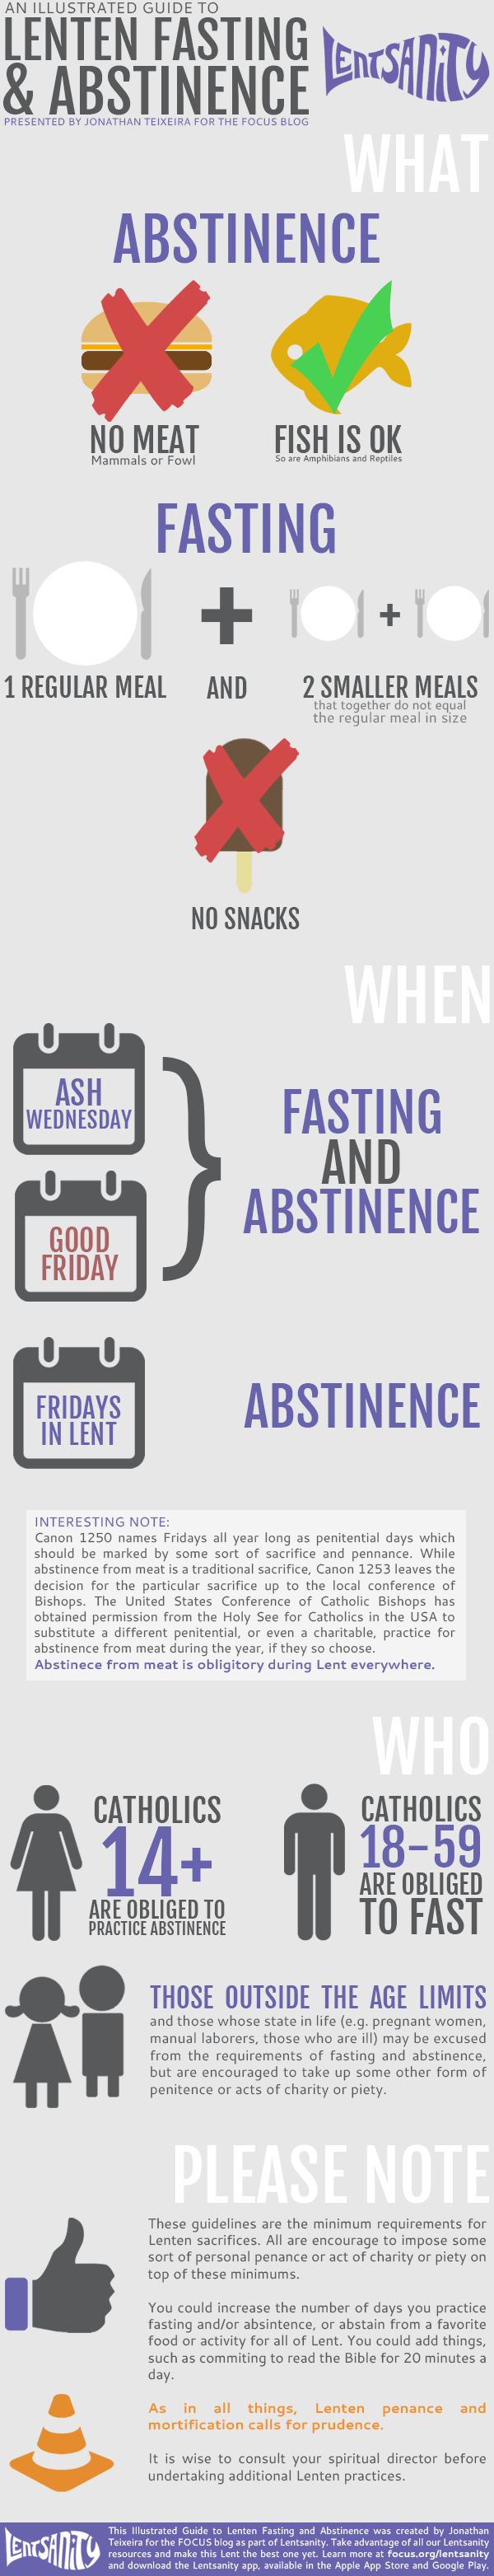 illustrated-guide-to-fasting